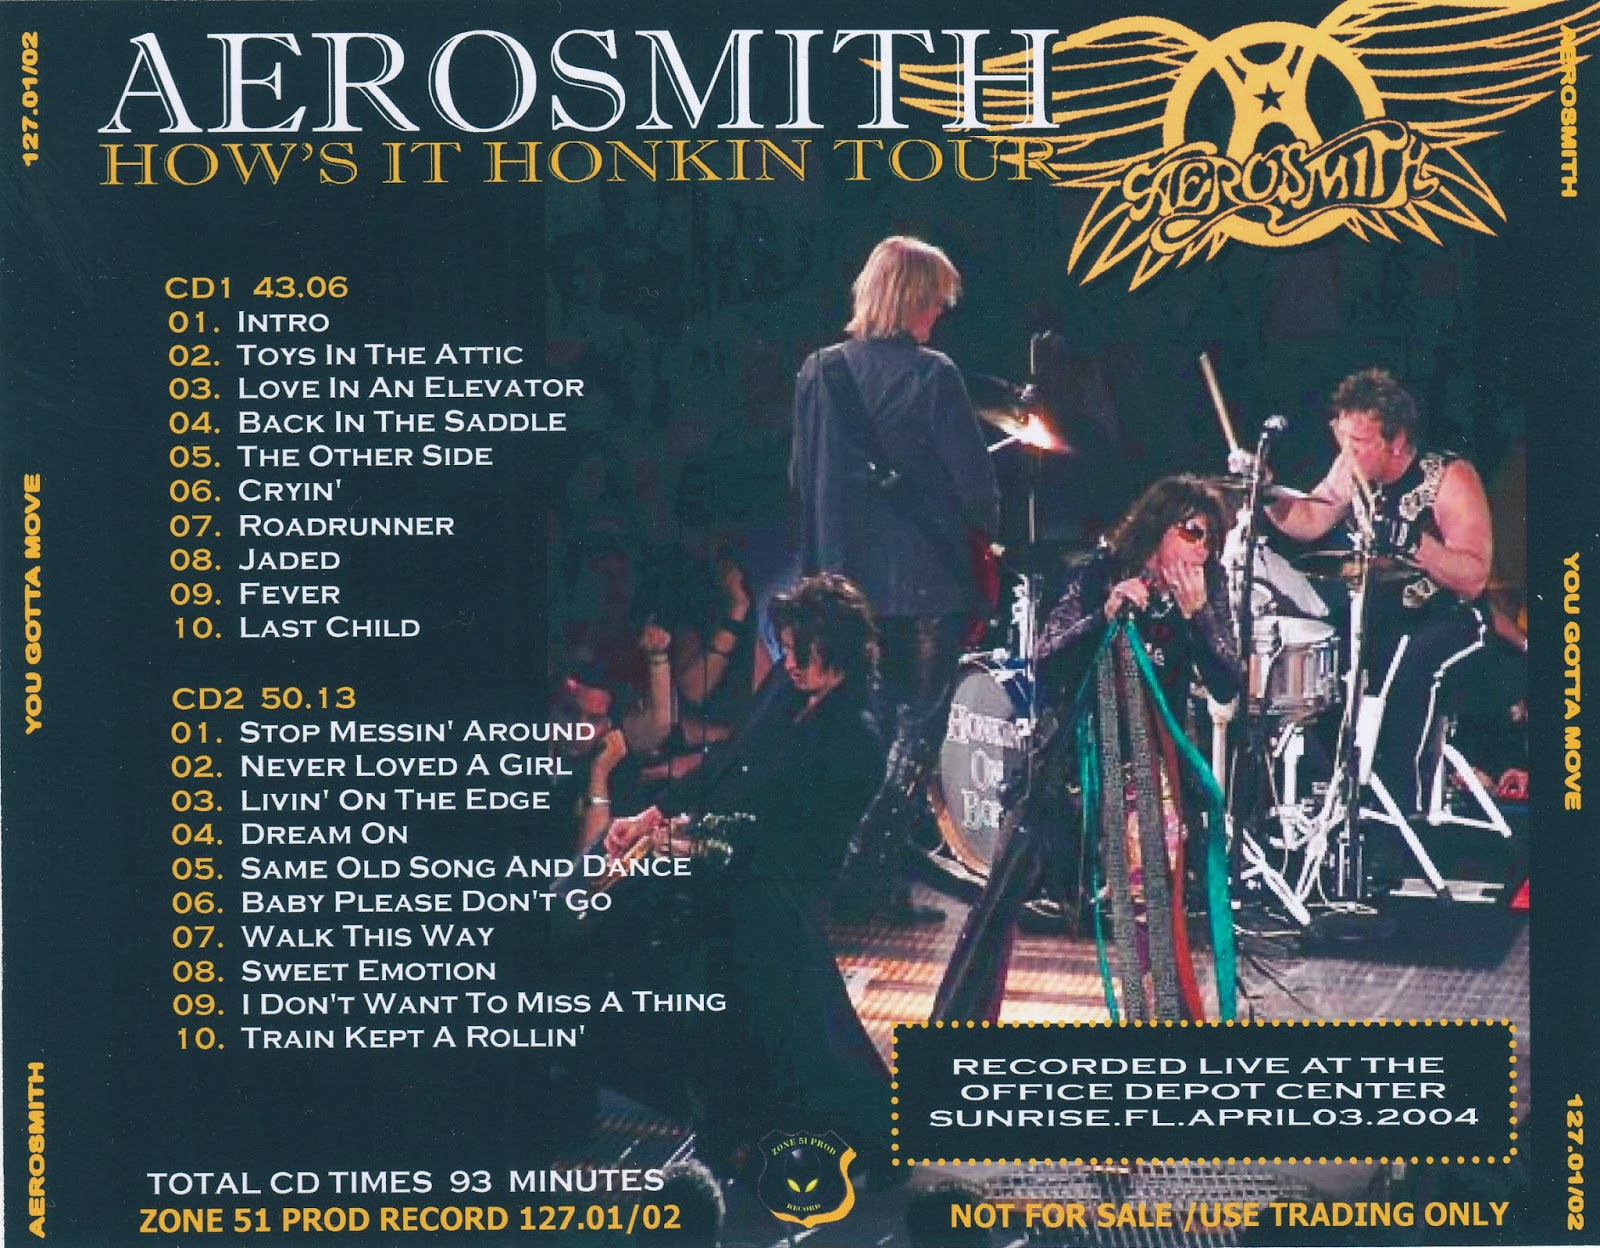 Aerosmith Bootlegs Cover Arts You Gotta Move Sunrise 2004